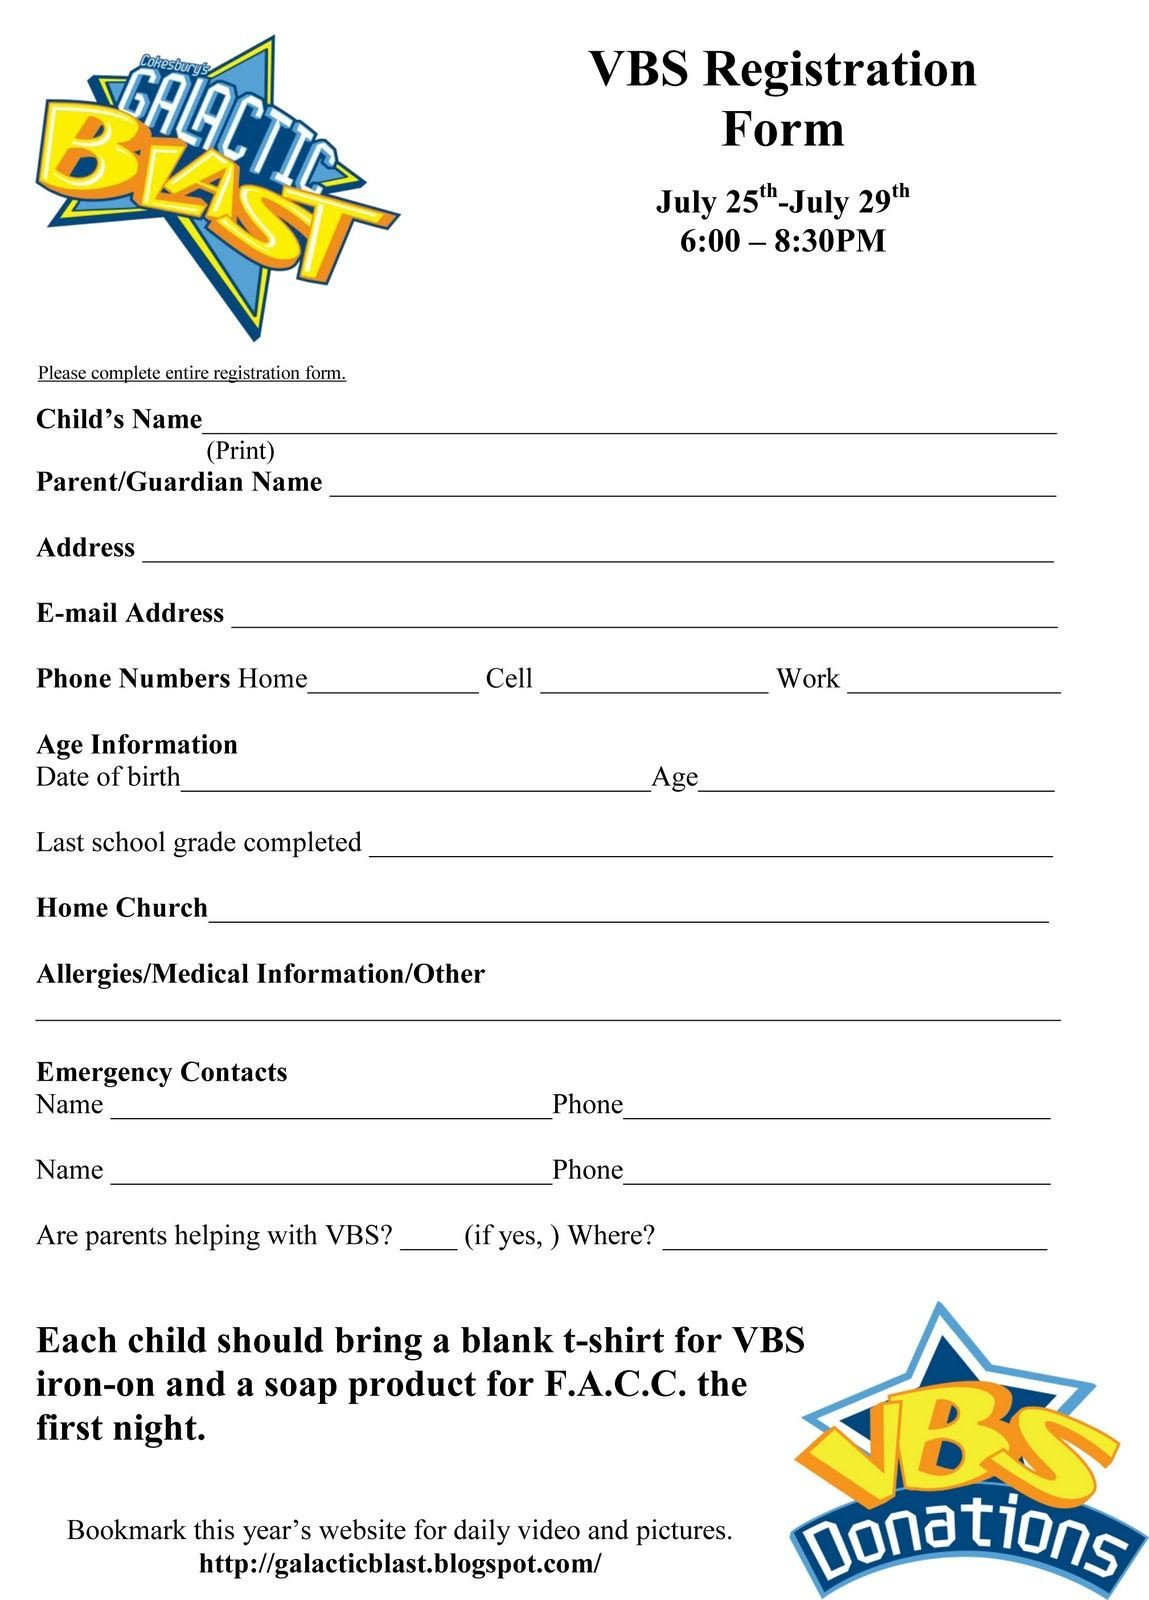 Registration forms Template Free Free Vbs Registration form Template Vbs